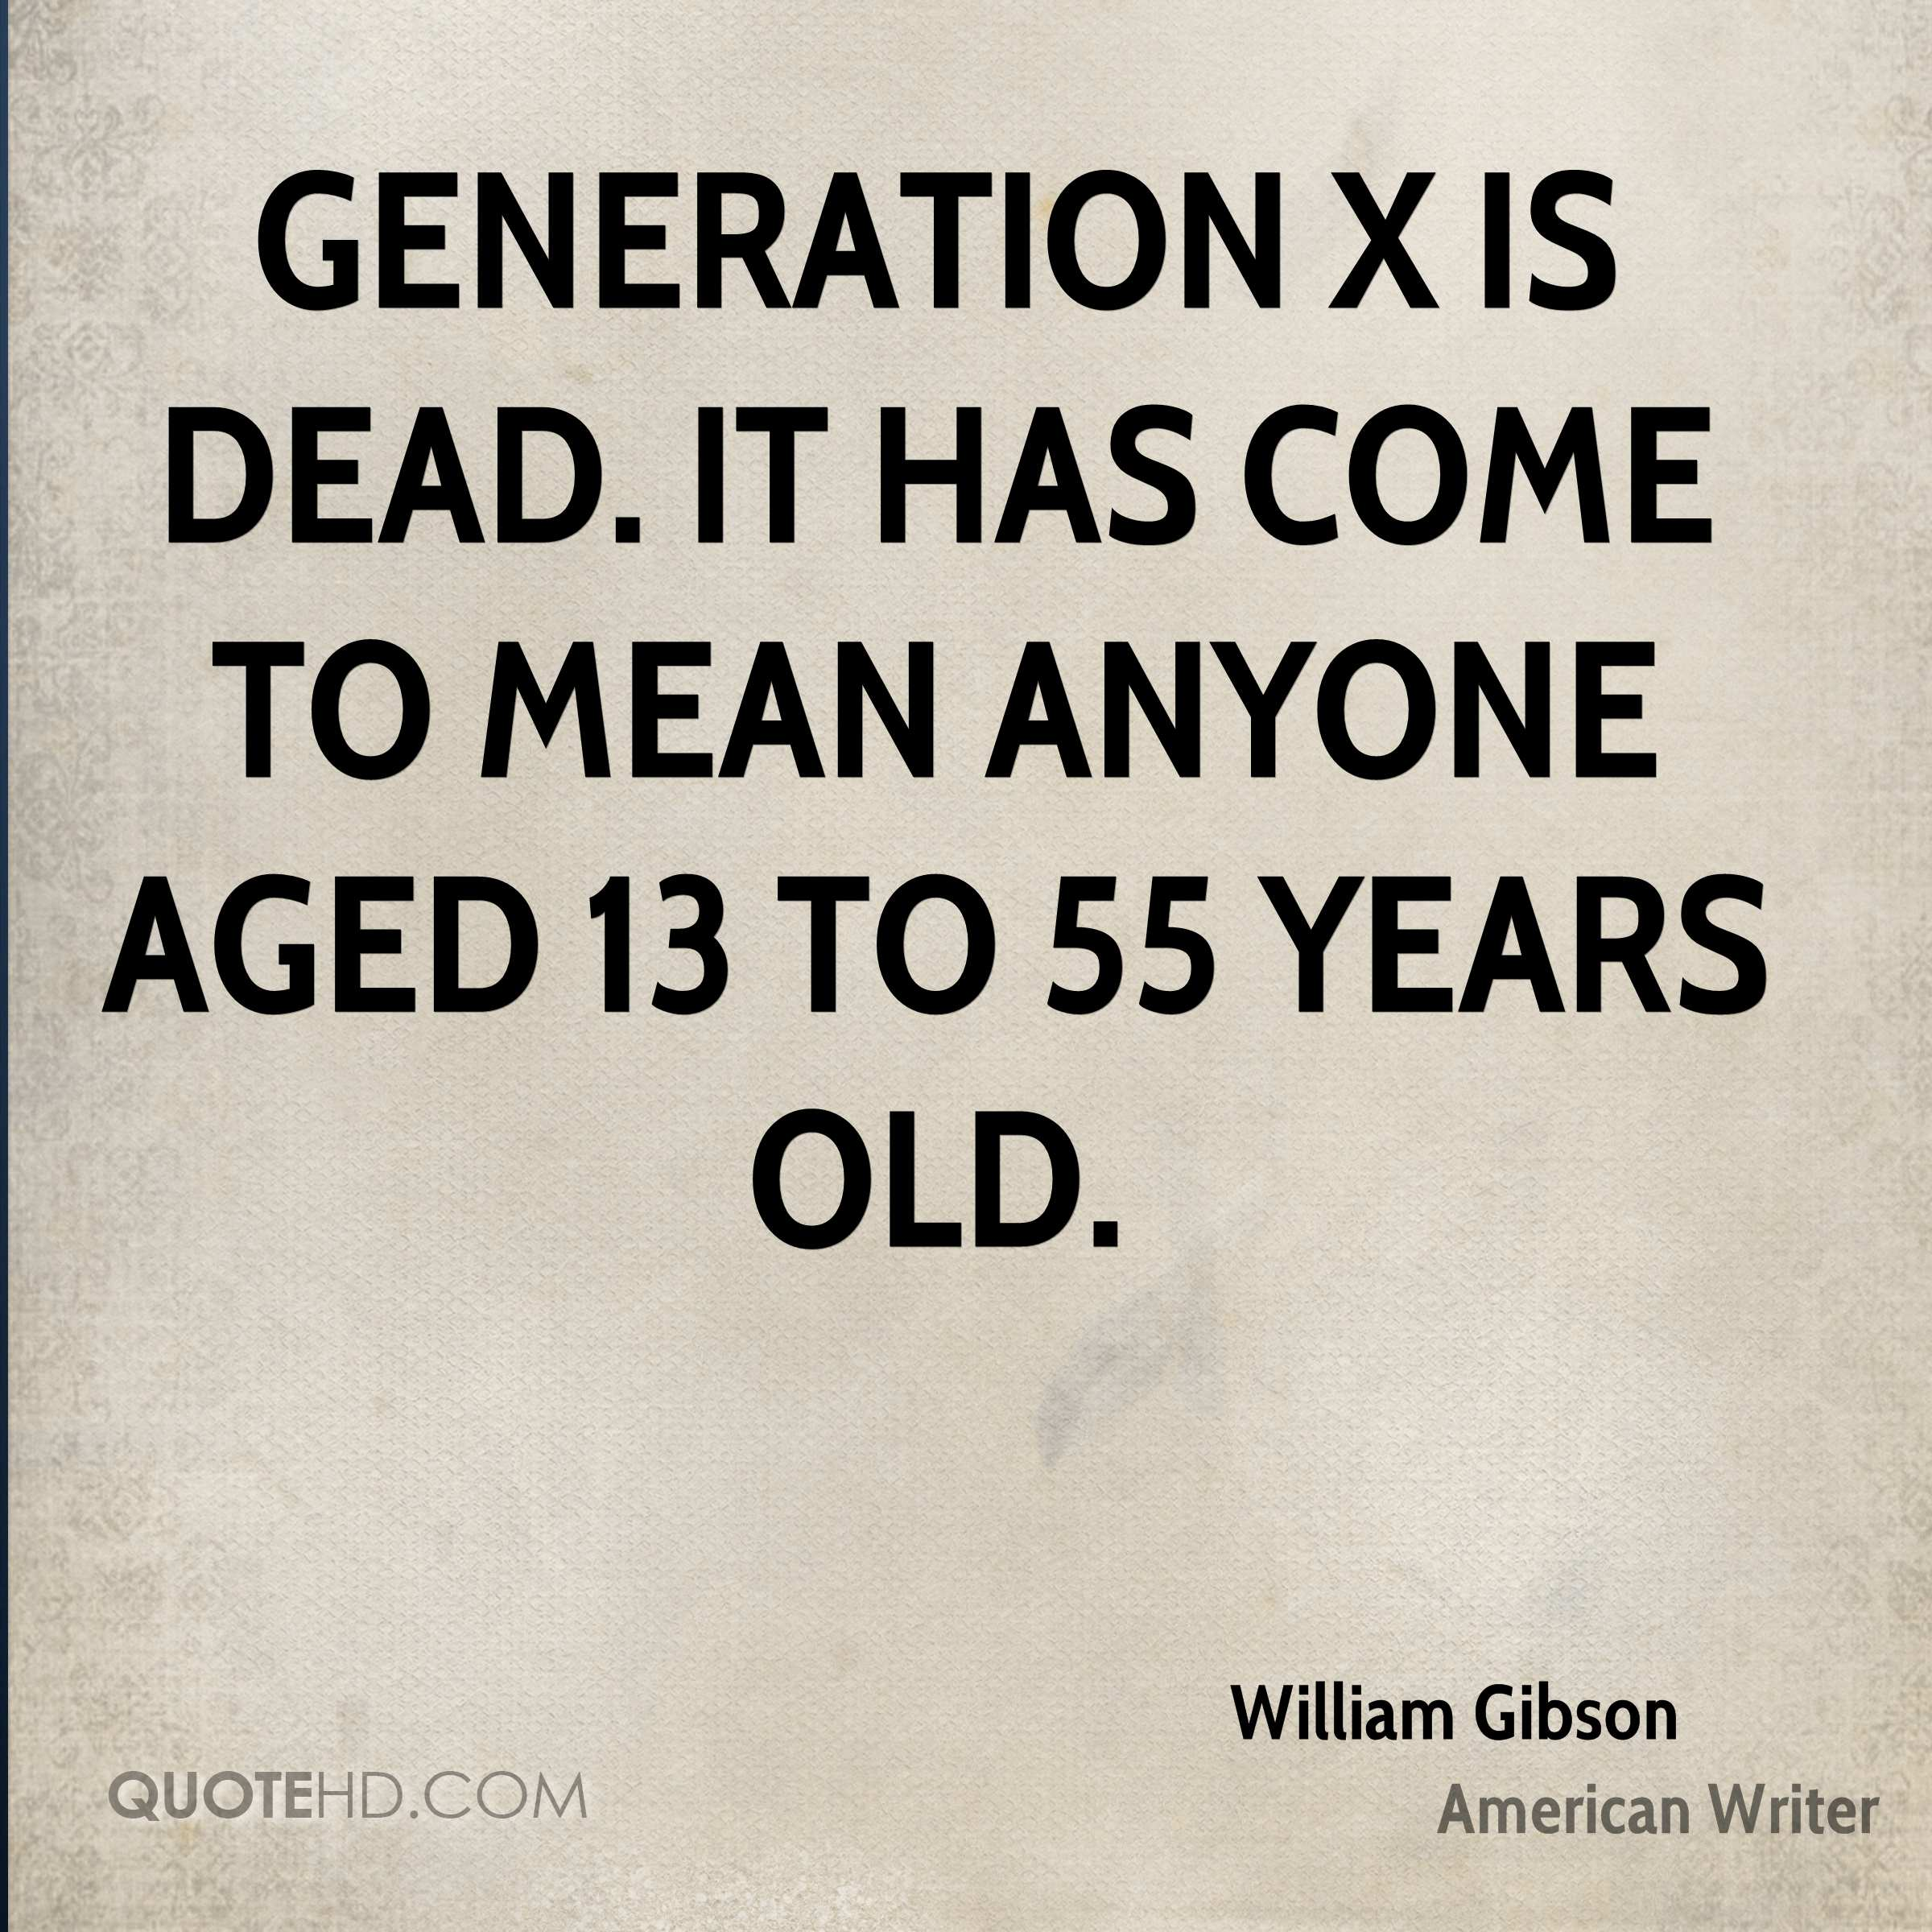 Generation X is dead. It has come to mean anyone aged 13 to 55 years old.